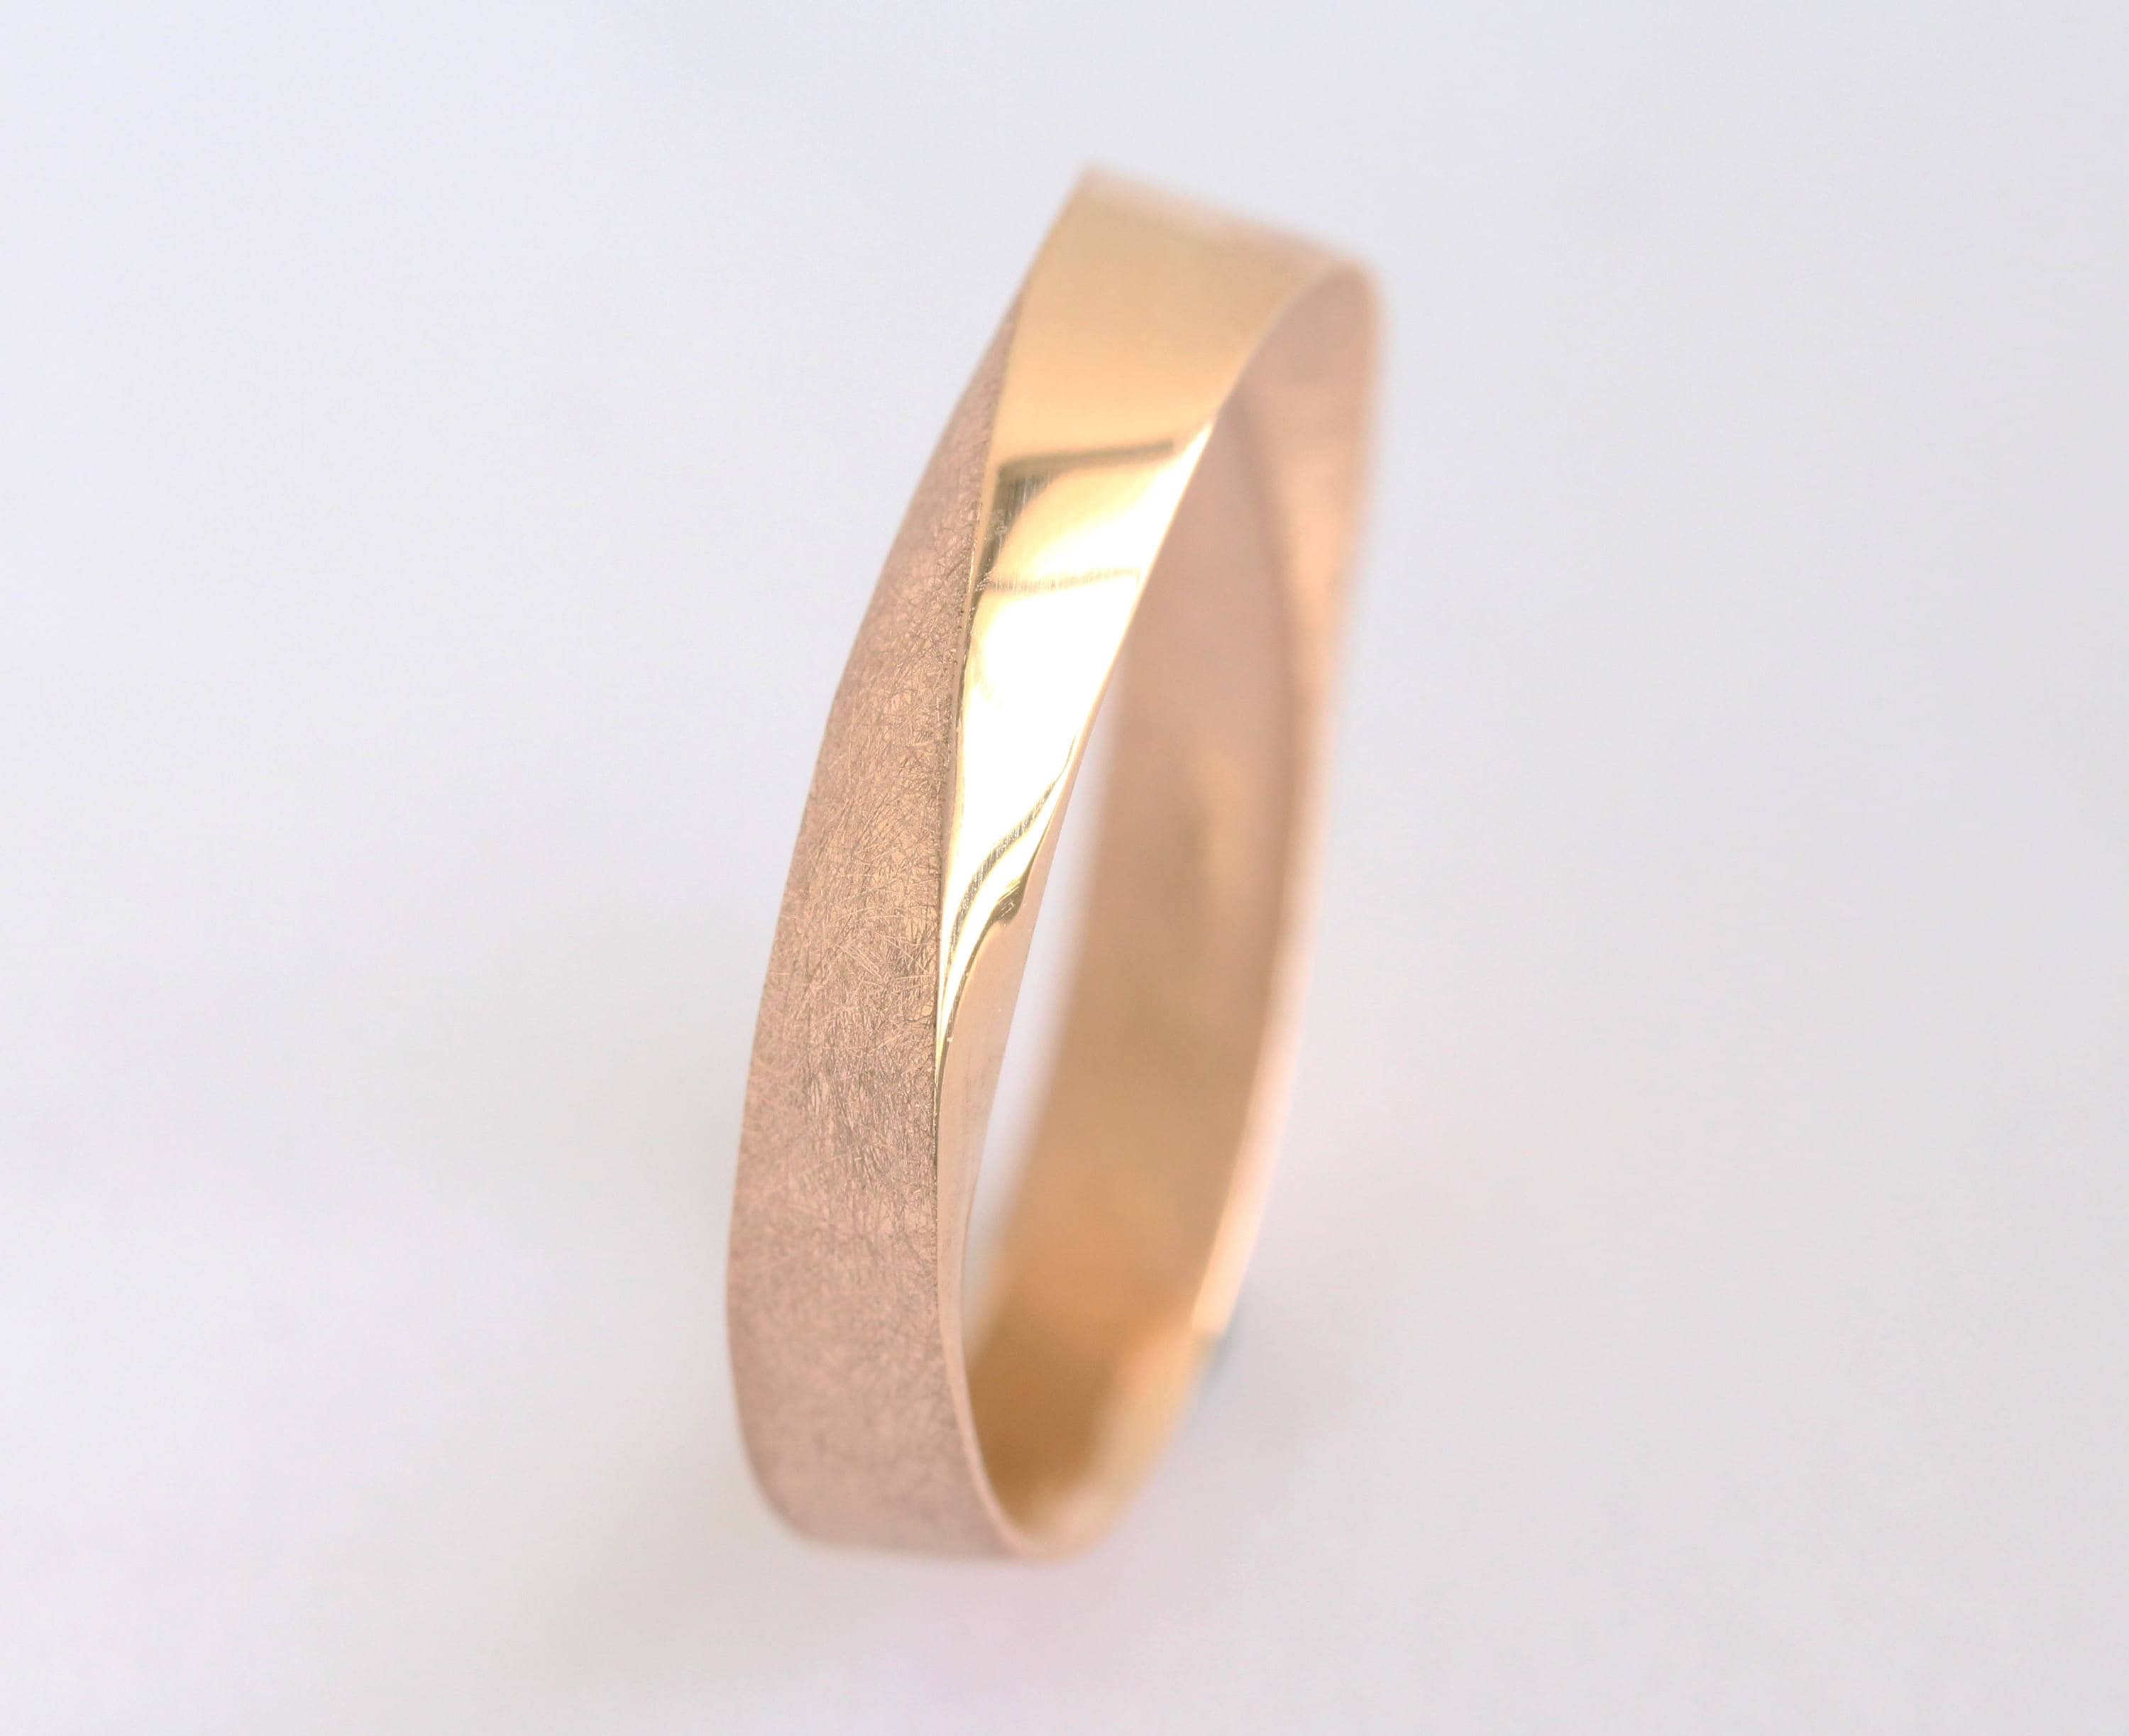 m pinterest pin mobius taux gold et recherche or google jewellery rings wedding martel finitions